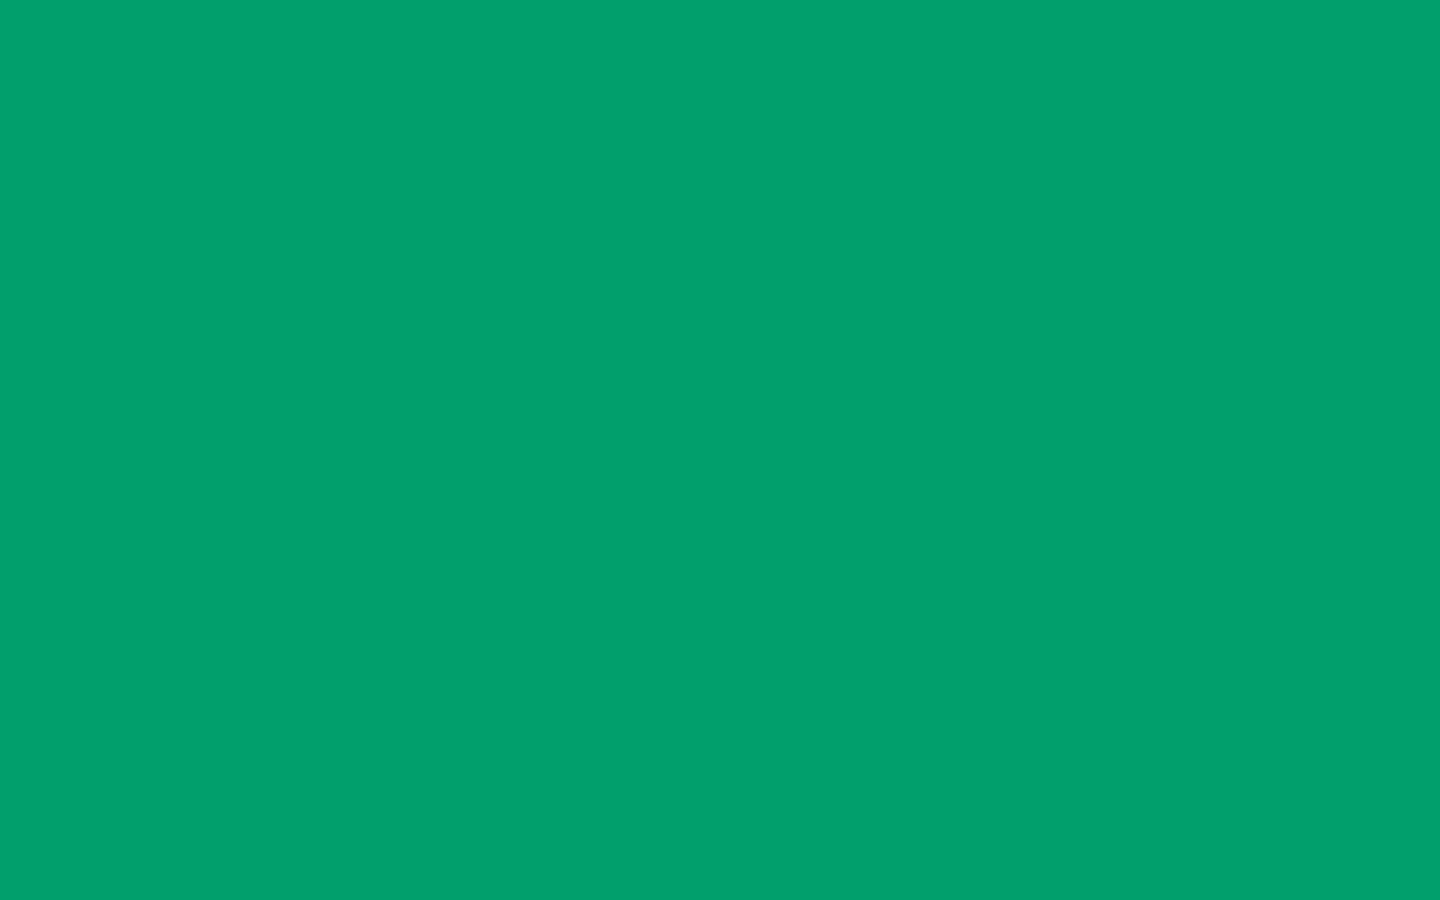 1440x900 Green NCS Solid Color Background